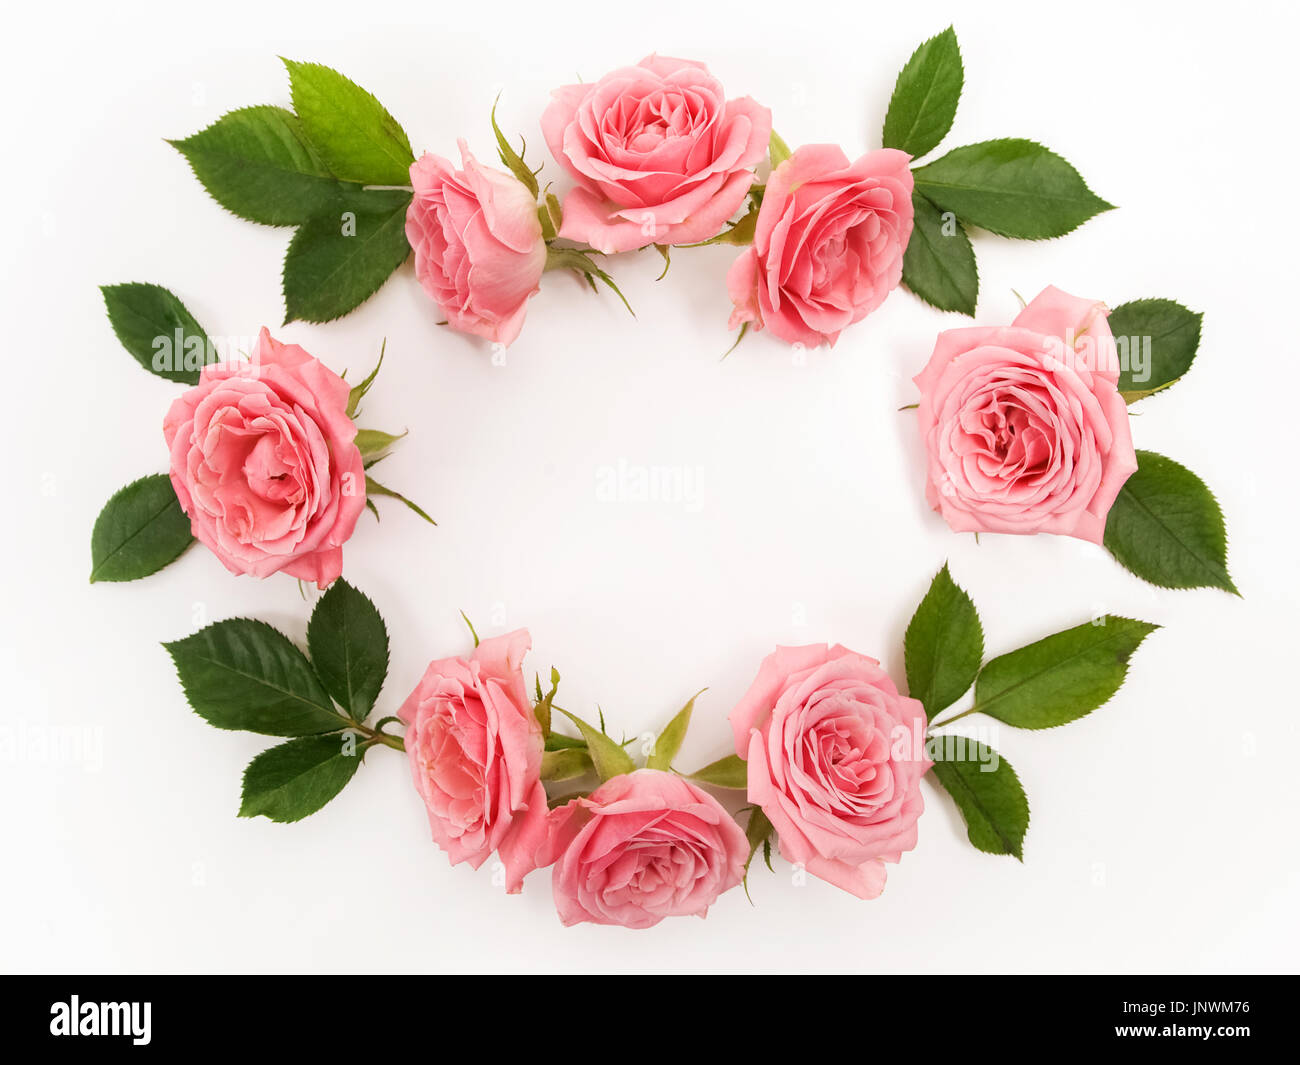 Round frame made of pink roses, green leaves, branches, floral pattern on white background. Flat lay, top view. - Stock Image